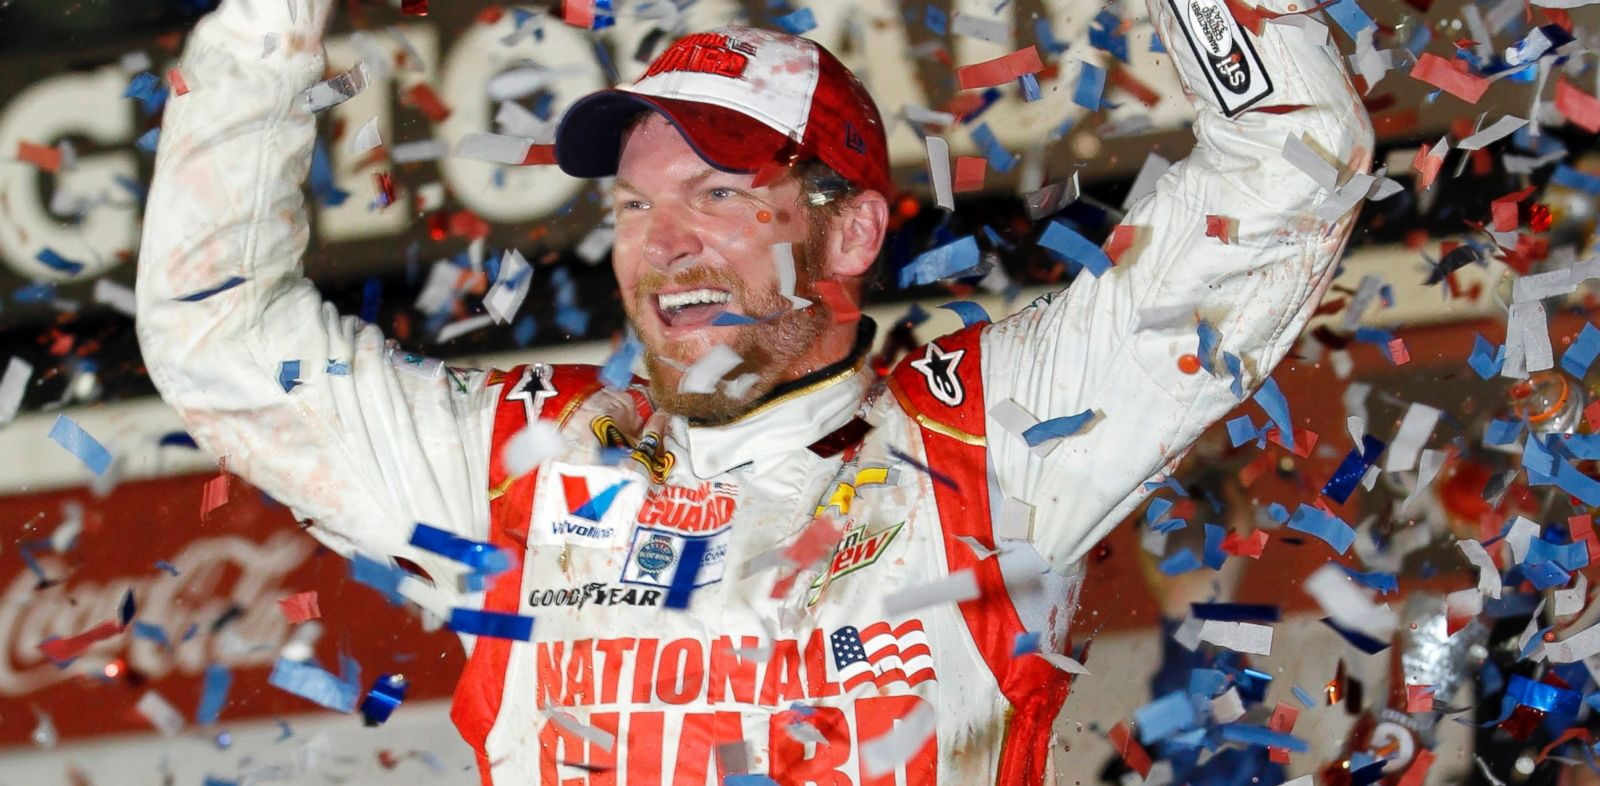 PHOTO: Dale Earnhardt Jr. celebrates in Victory Lane after winning the NASCAR Daytona 500 Sprint Cup series auto race at Daytona International Speedway in Daytona Beach, Fla., Sunday, Feb. 23, 2014.